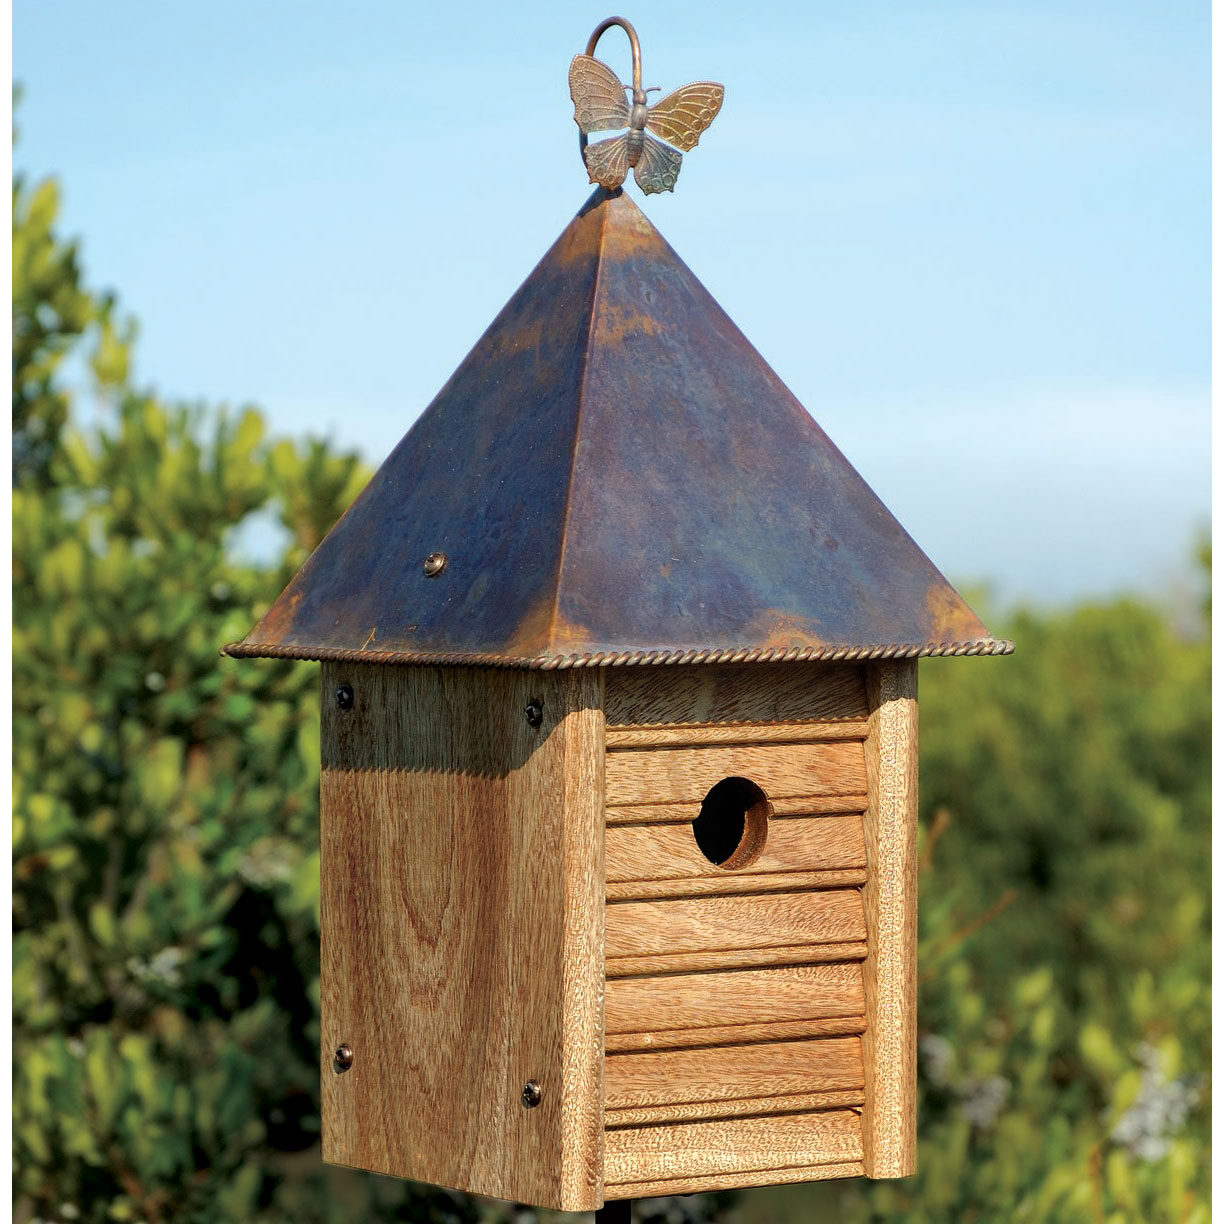 High Quality Homestead Wooden Bird House With Copper Roof